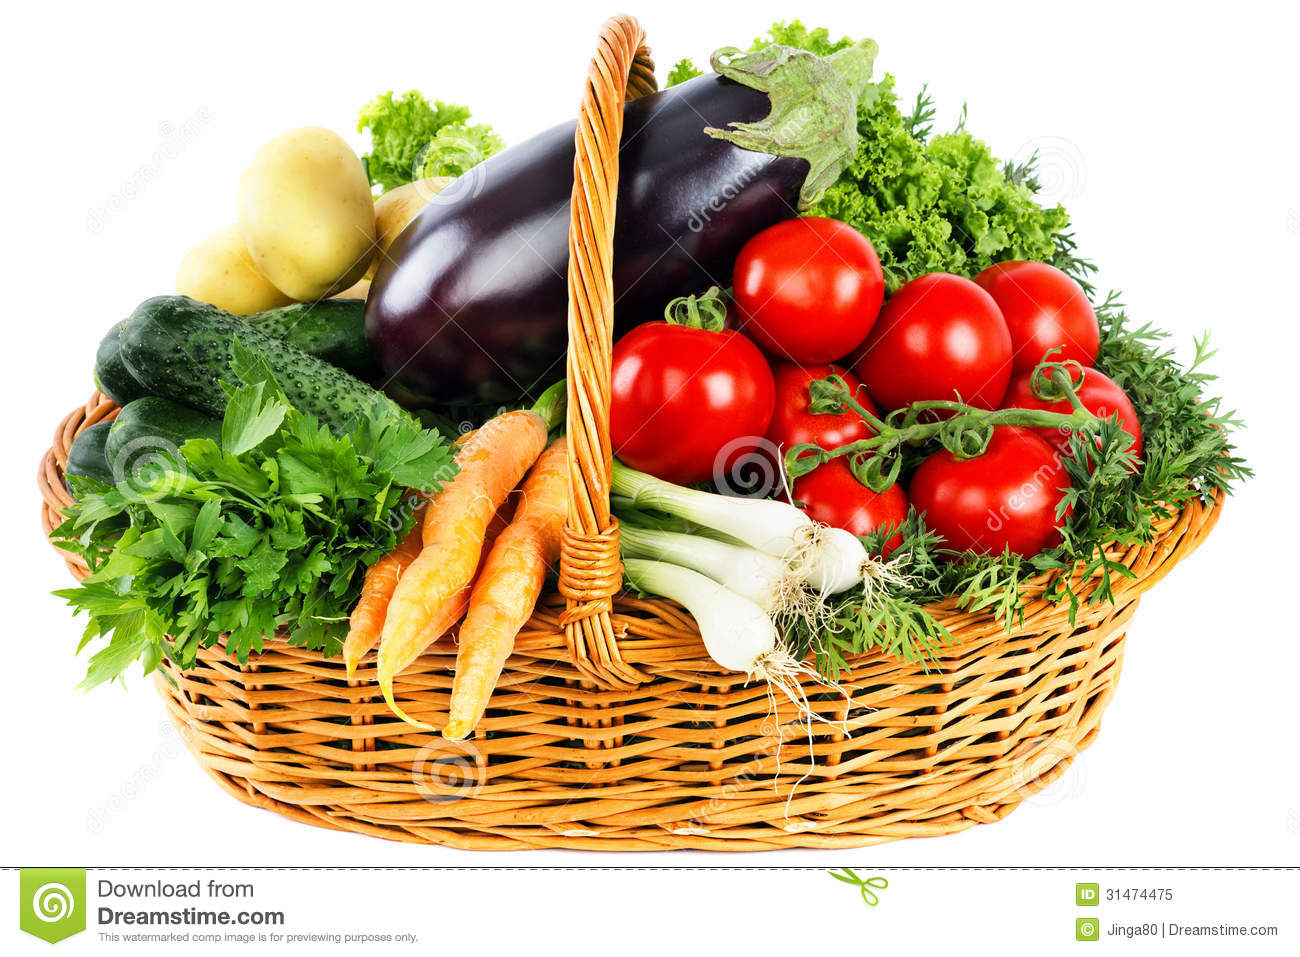 Fresh Vegetables In Basket Royalty Free Stock Photo   Image  31474475